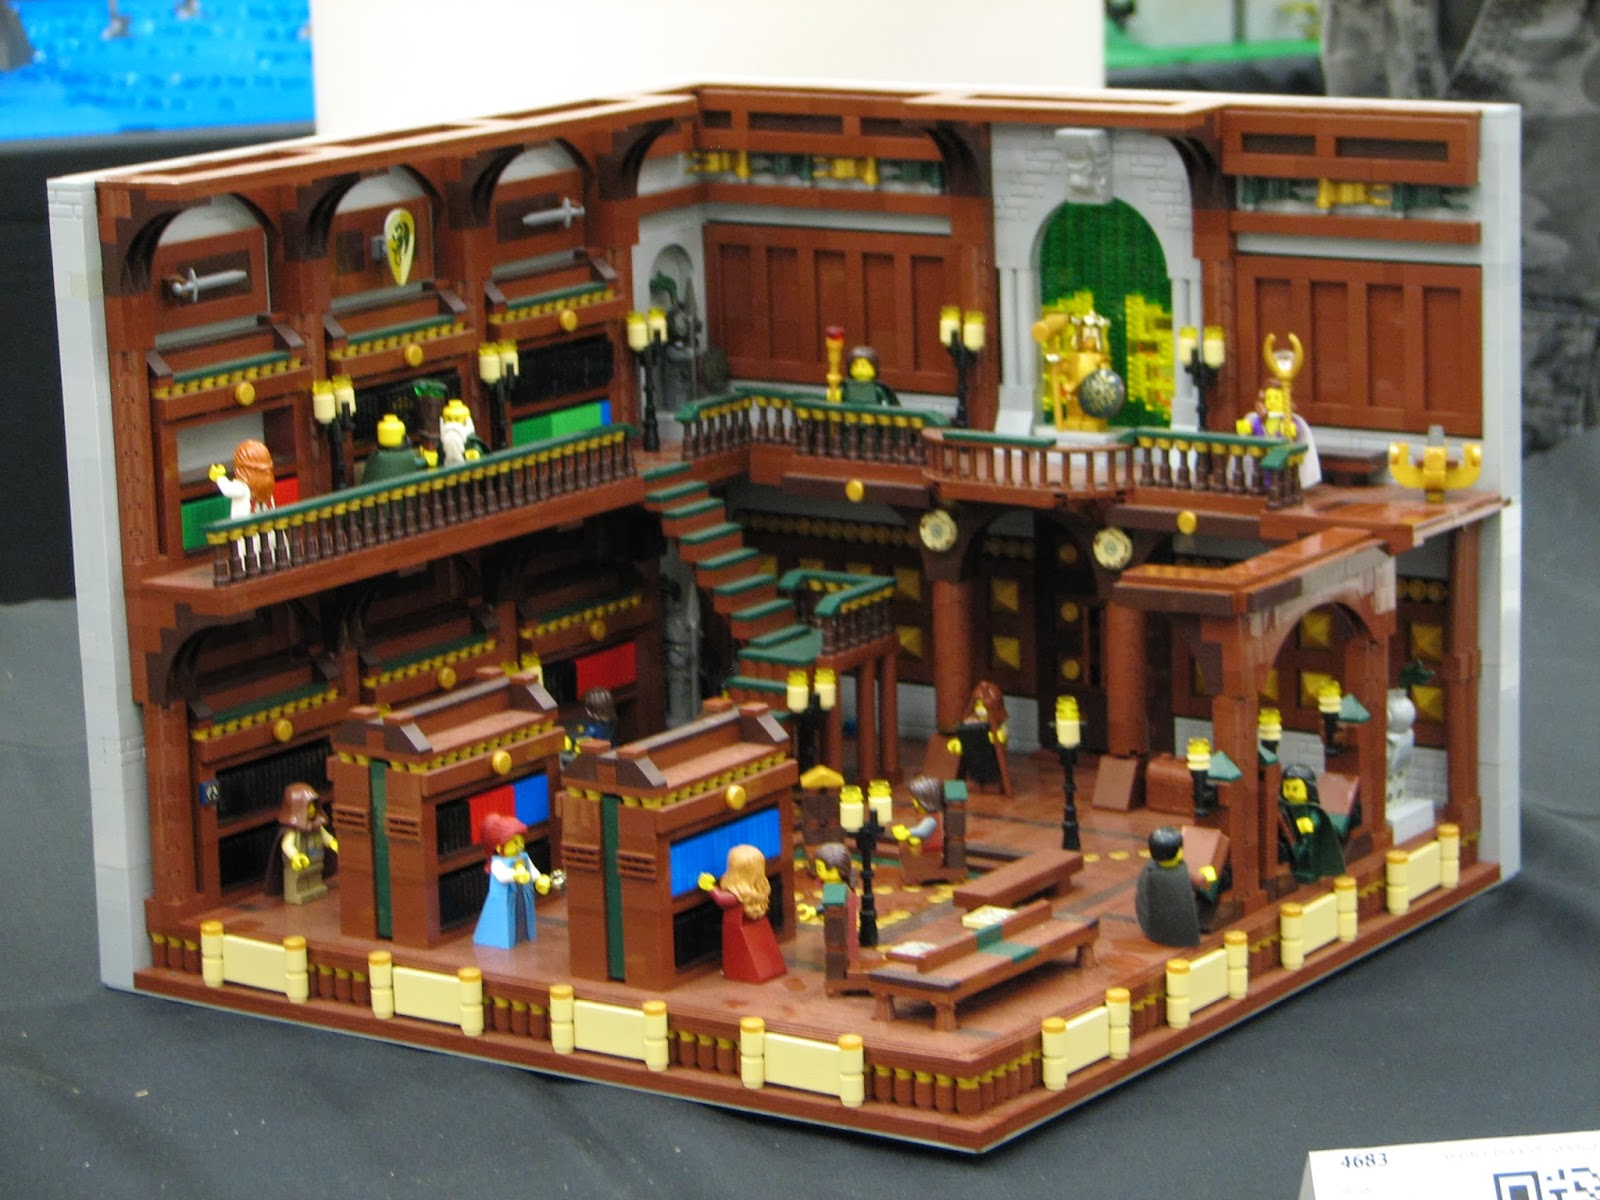 gen y er on the loose brickcon  here is another set of gorgeous detailed building facades this time a pirate theme most excellent